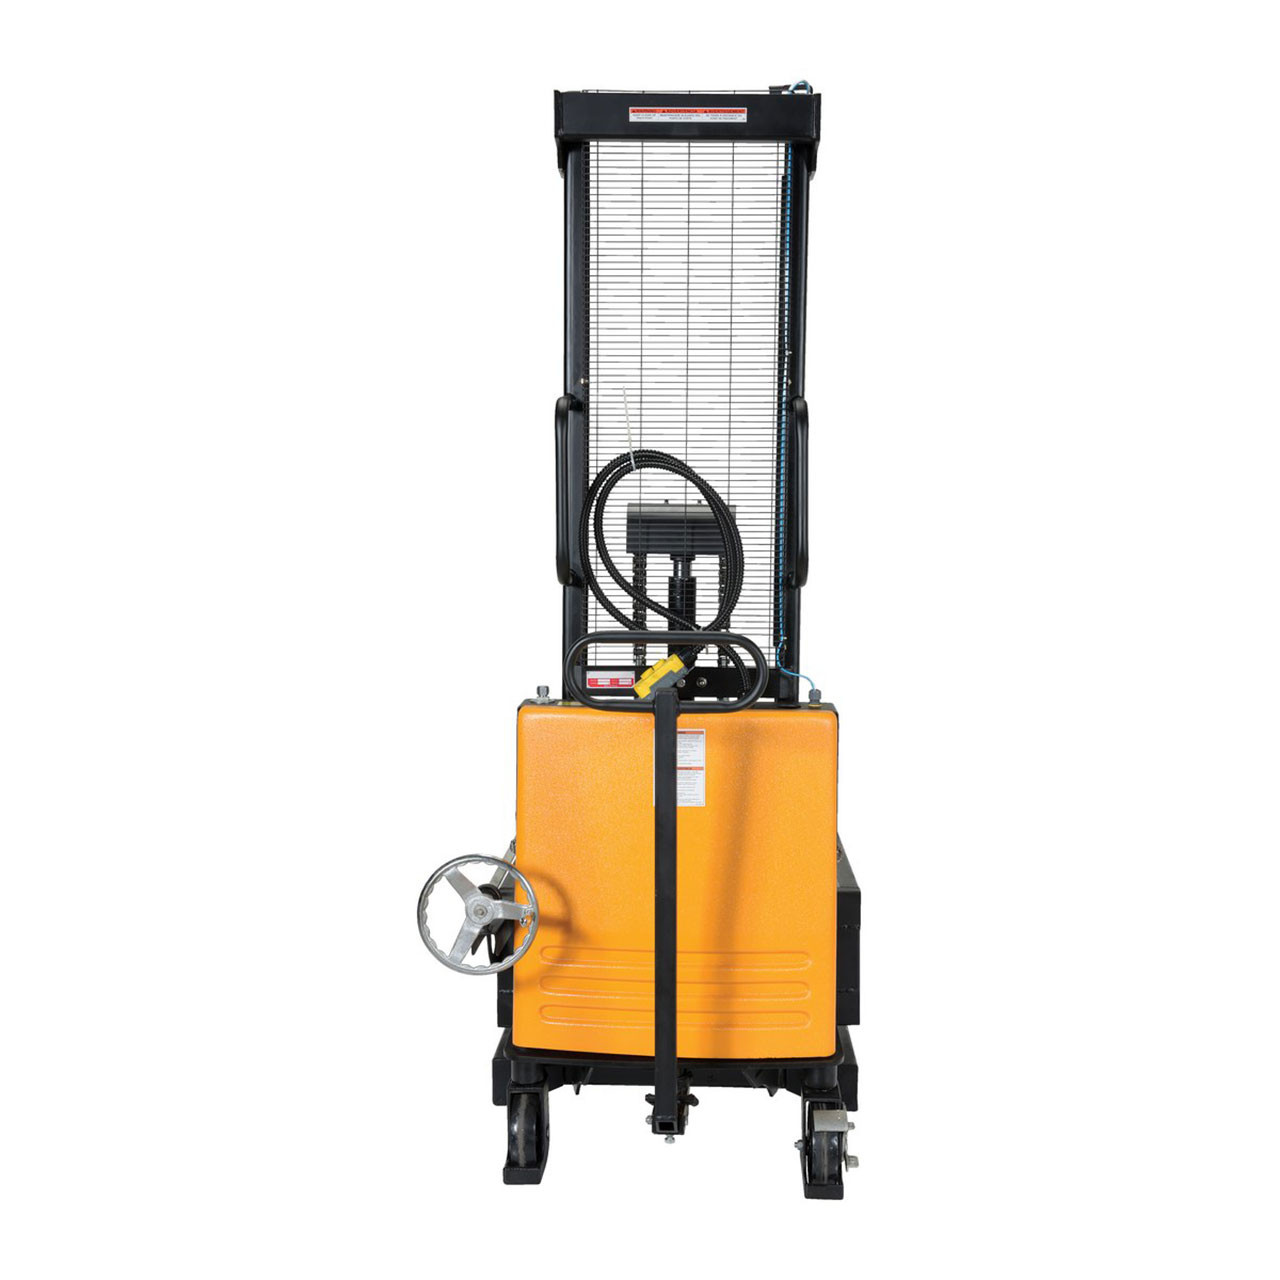 Portable Drum Lifter/Rotator/Transporter Rear View